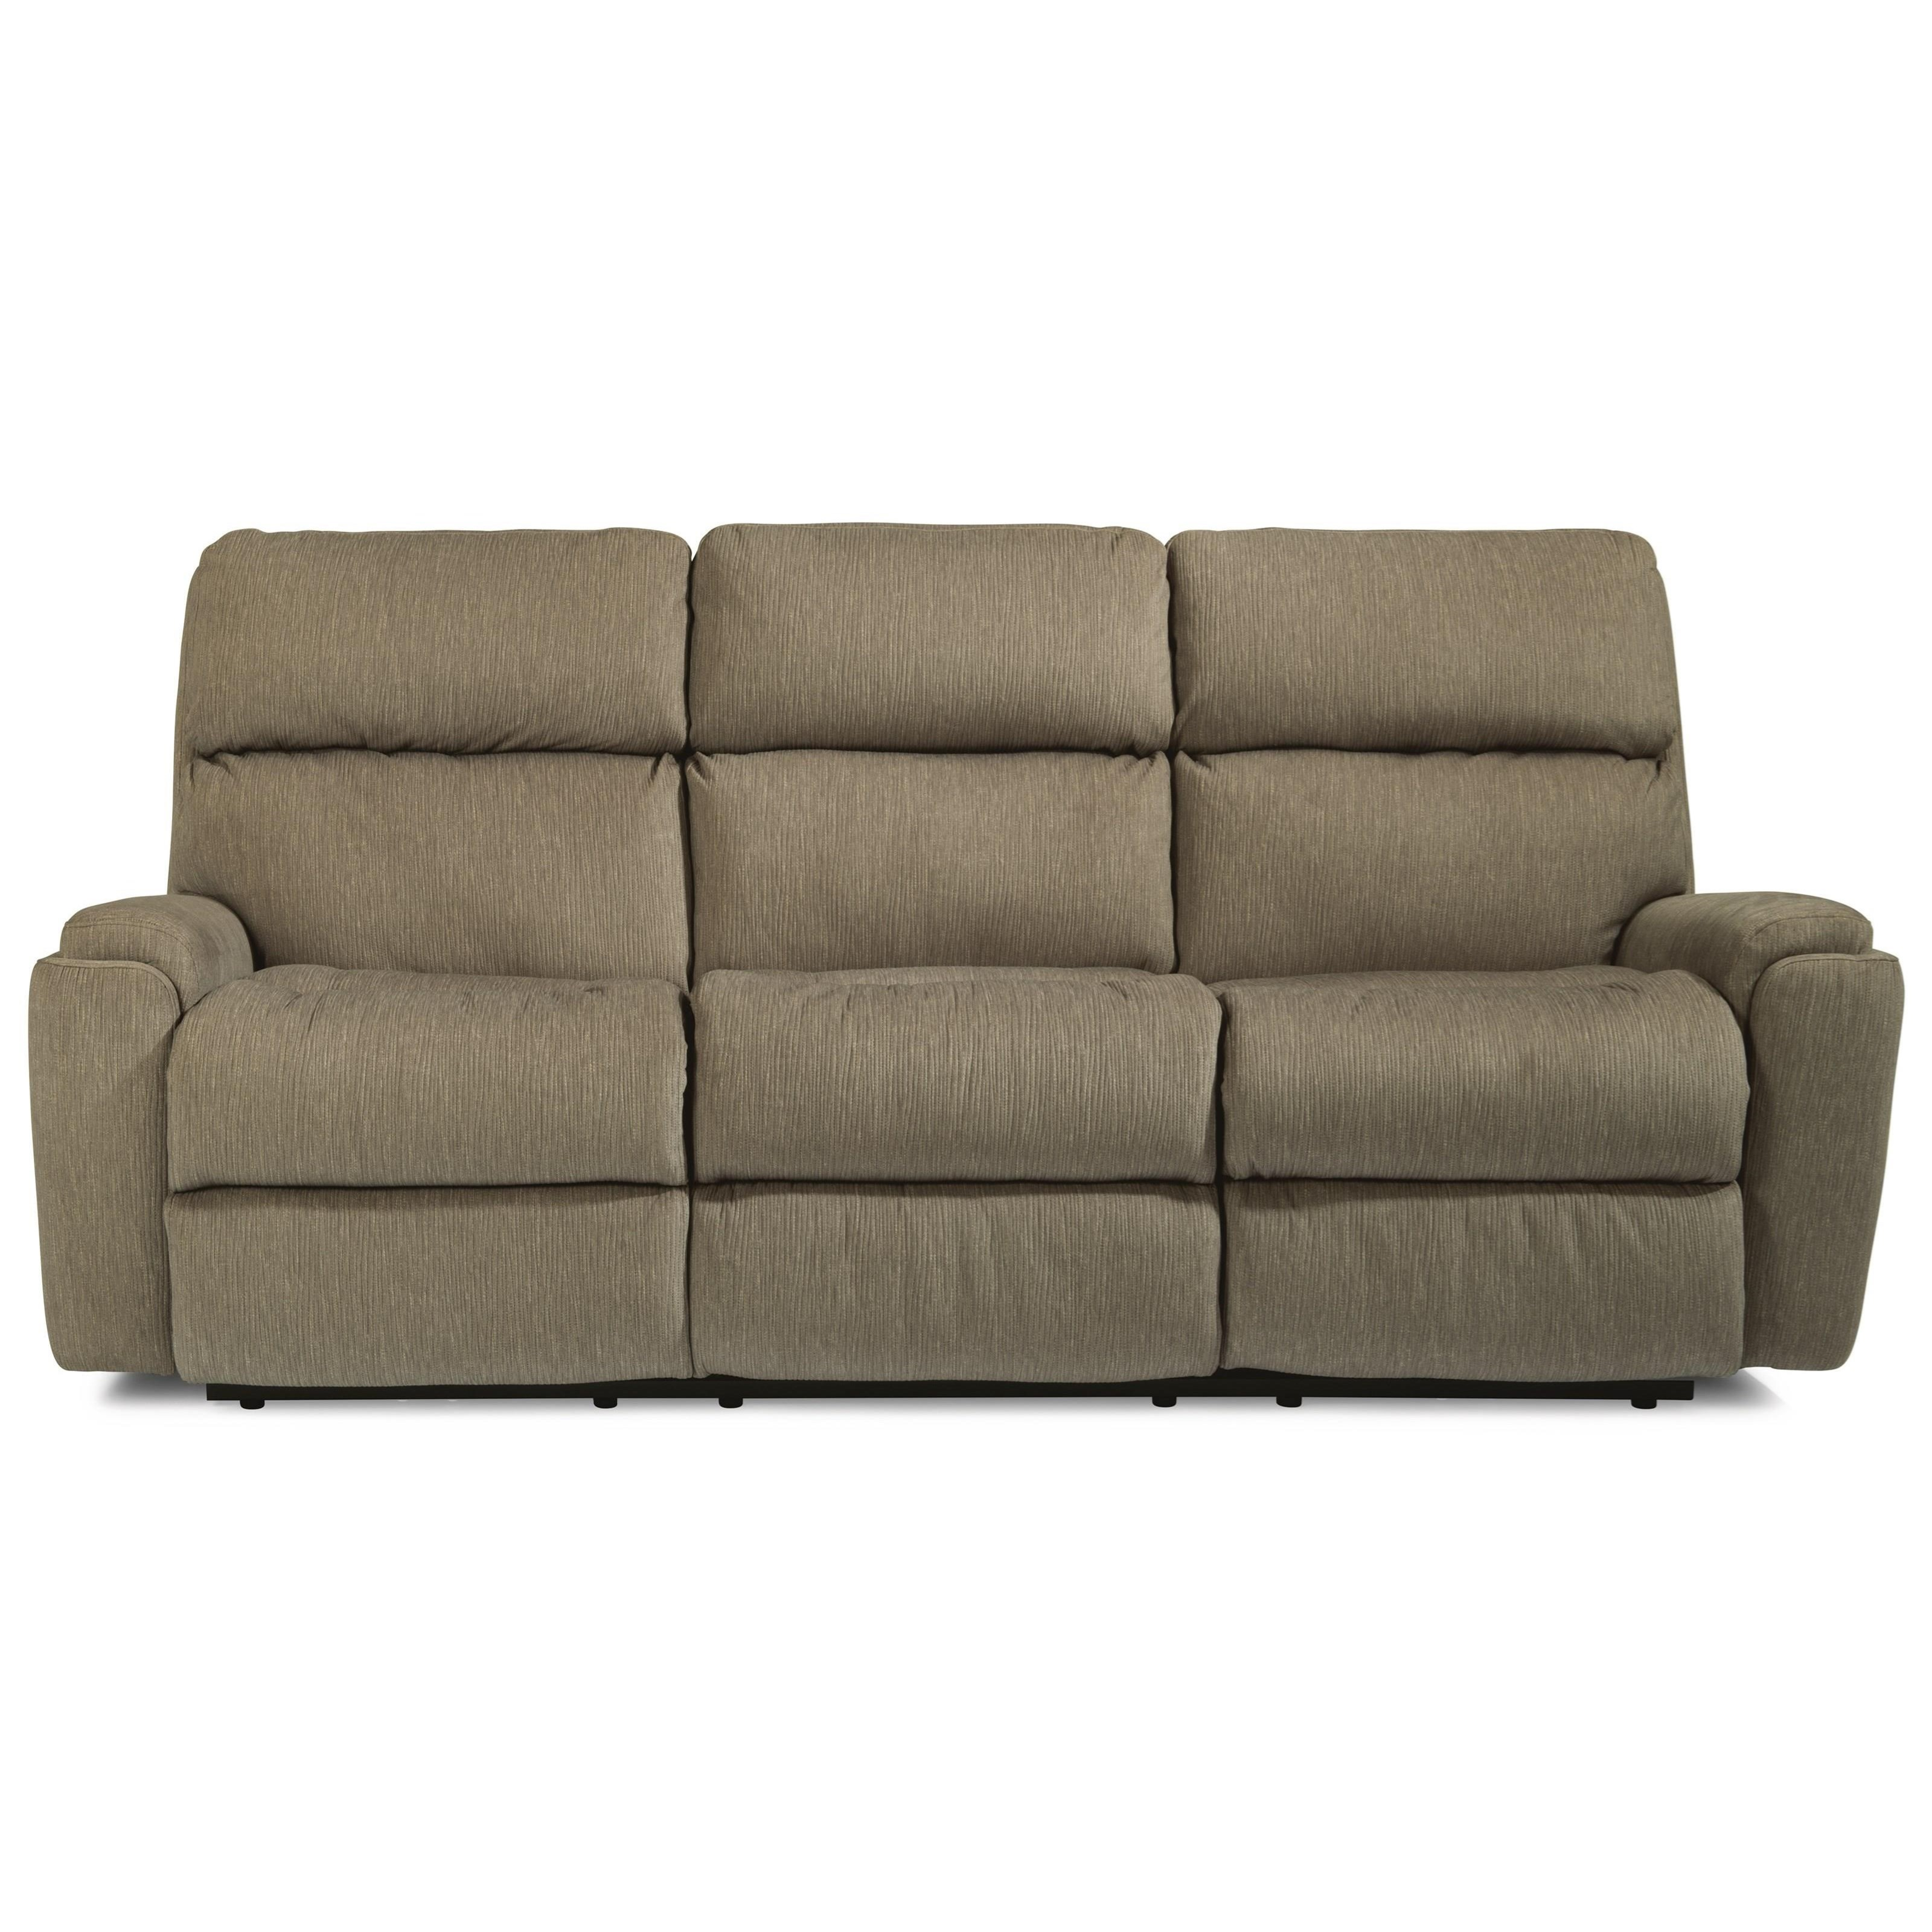 Rio Power Reclining Sofa with Power Headrests by Flexsteel at Walker's Furniture